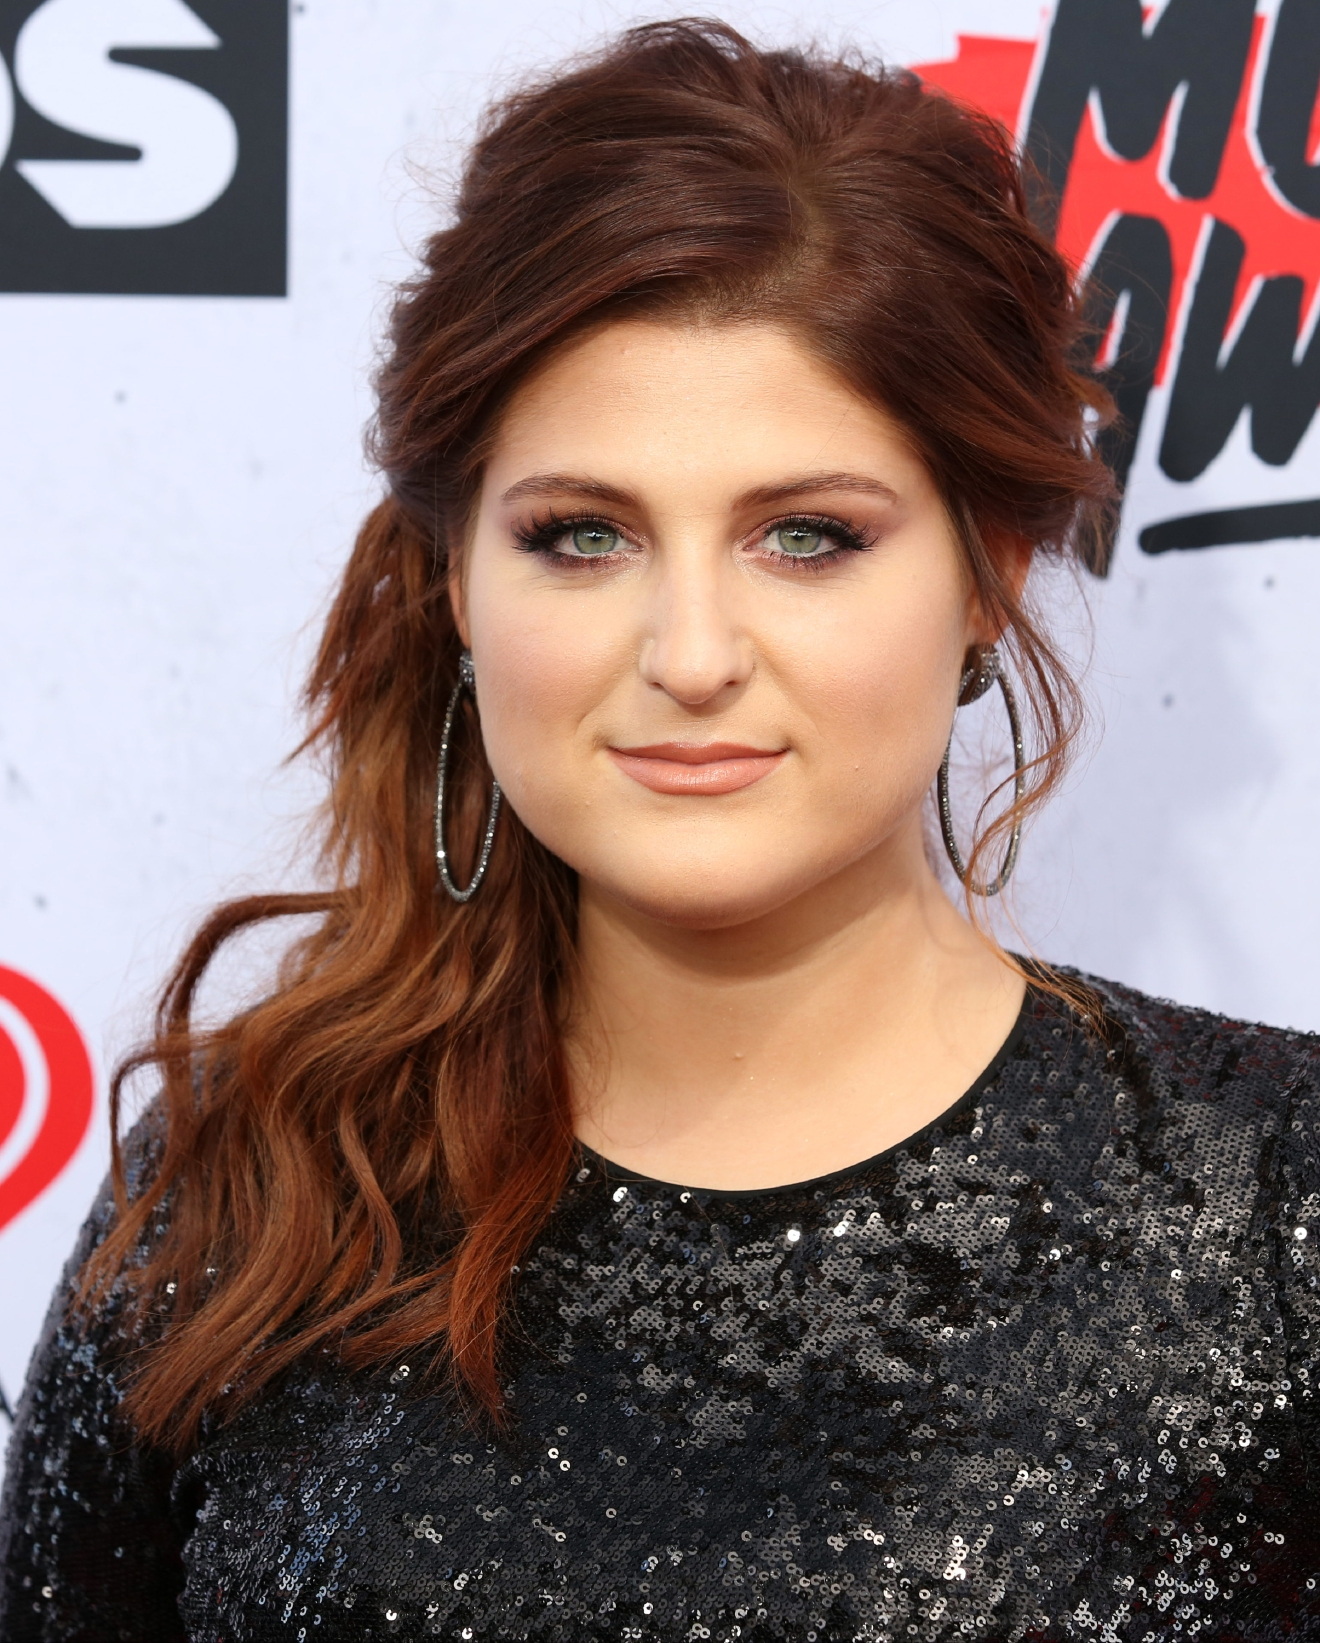 Celebrities attend iHeartRadio Music Awards at The Forum.  Featuring: Meghan Trainor Where: Los Angeles, California, United States When: 04 Apr 2016 Credit: Brian To/WENN.com